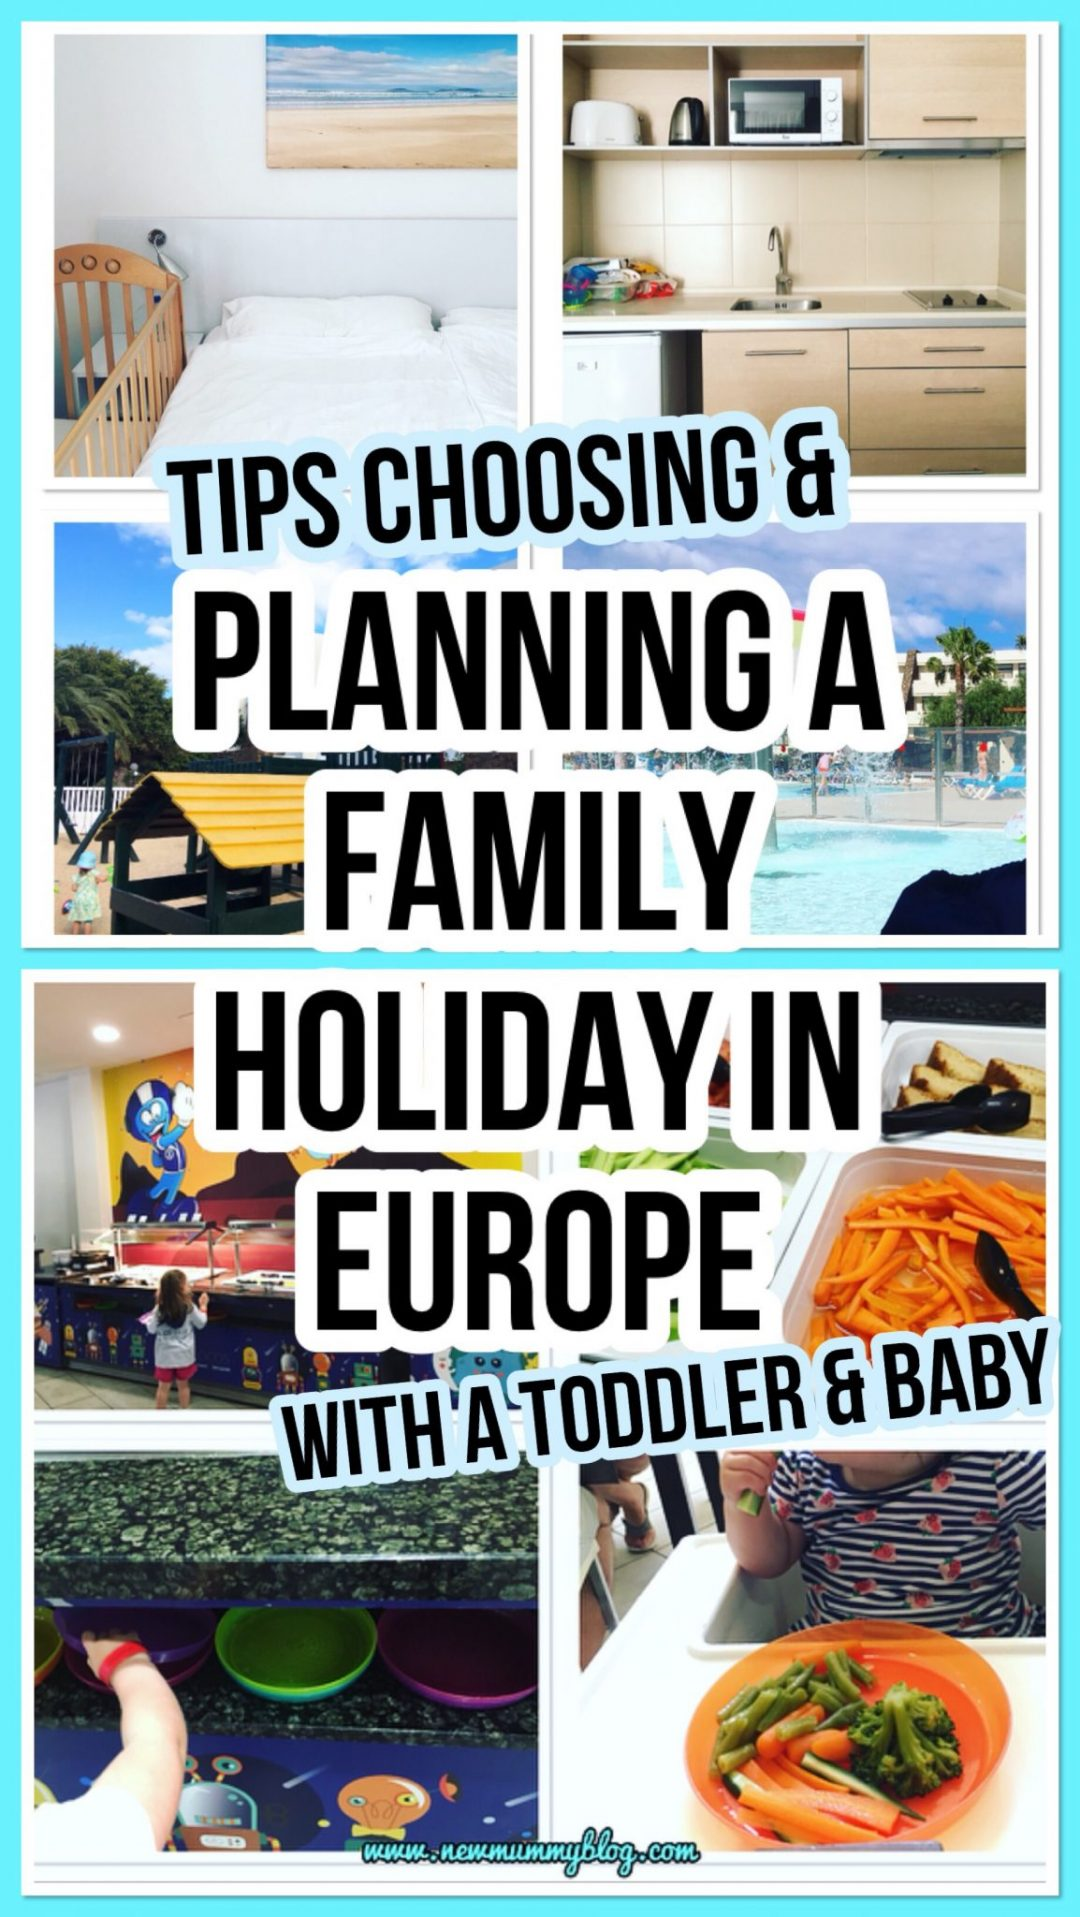 Tips for choosing and planning a brilliant successful family holiday in Europe - all inclusive hotel features including one bedroom, kitchen, play park, splash kids pool and kids buffet